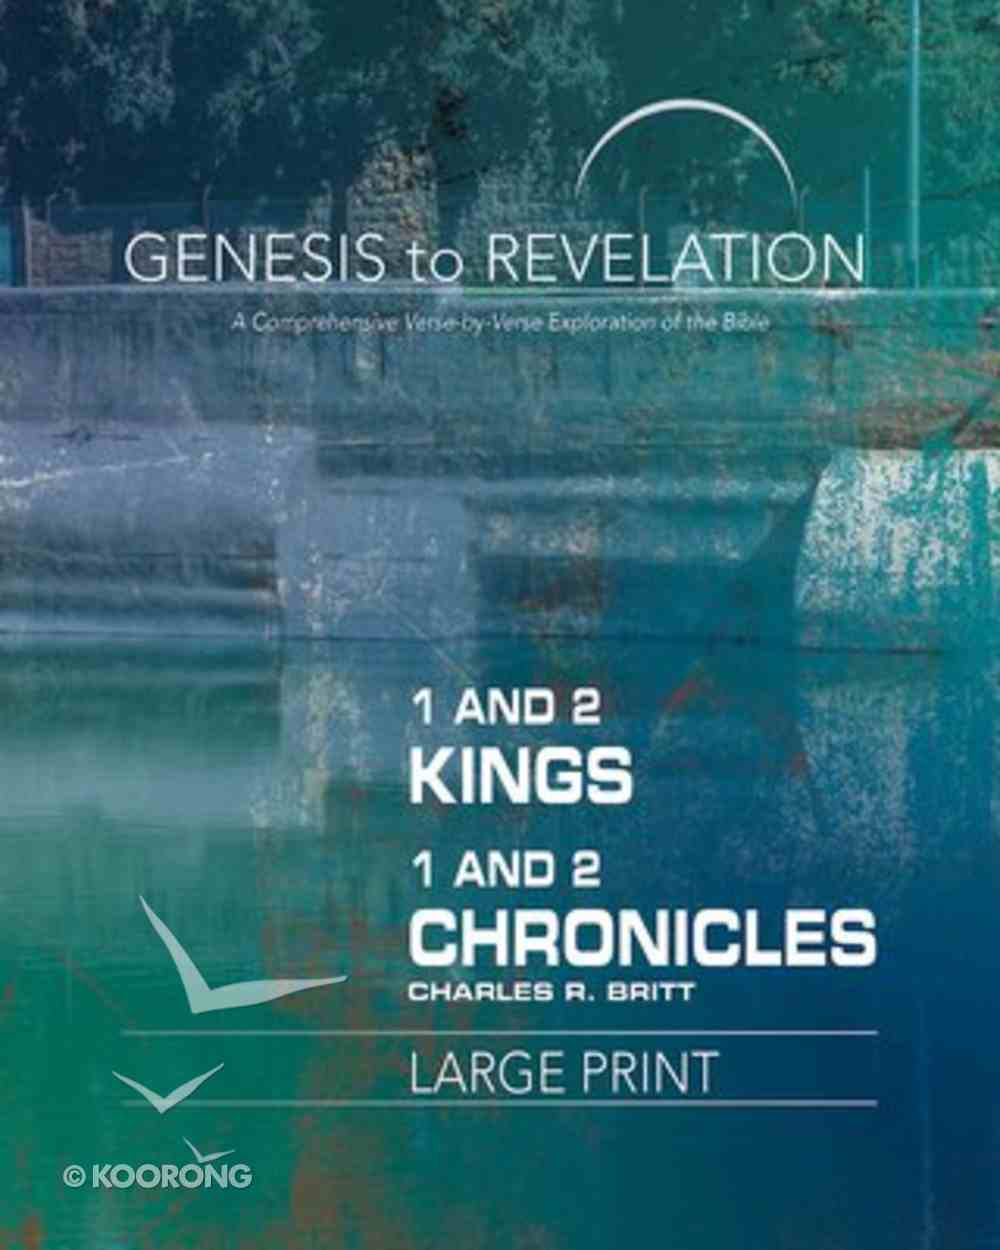 1&2 Kings, 1&2 Chronicles : A Comprehensive Verse-By-Verse Exploration of the Bible (Participant Book, Large Print) (Genesis To Revelation Series) Paperback